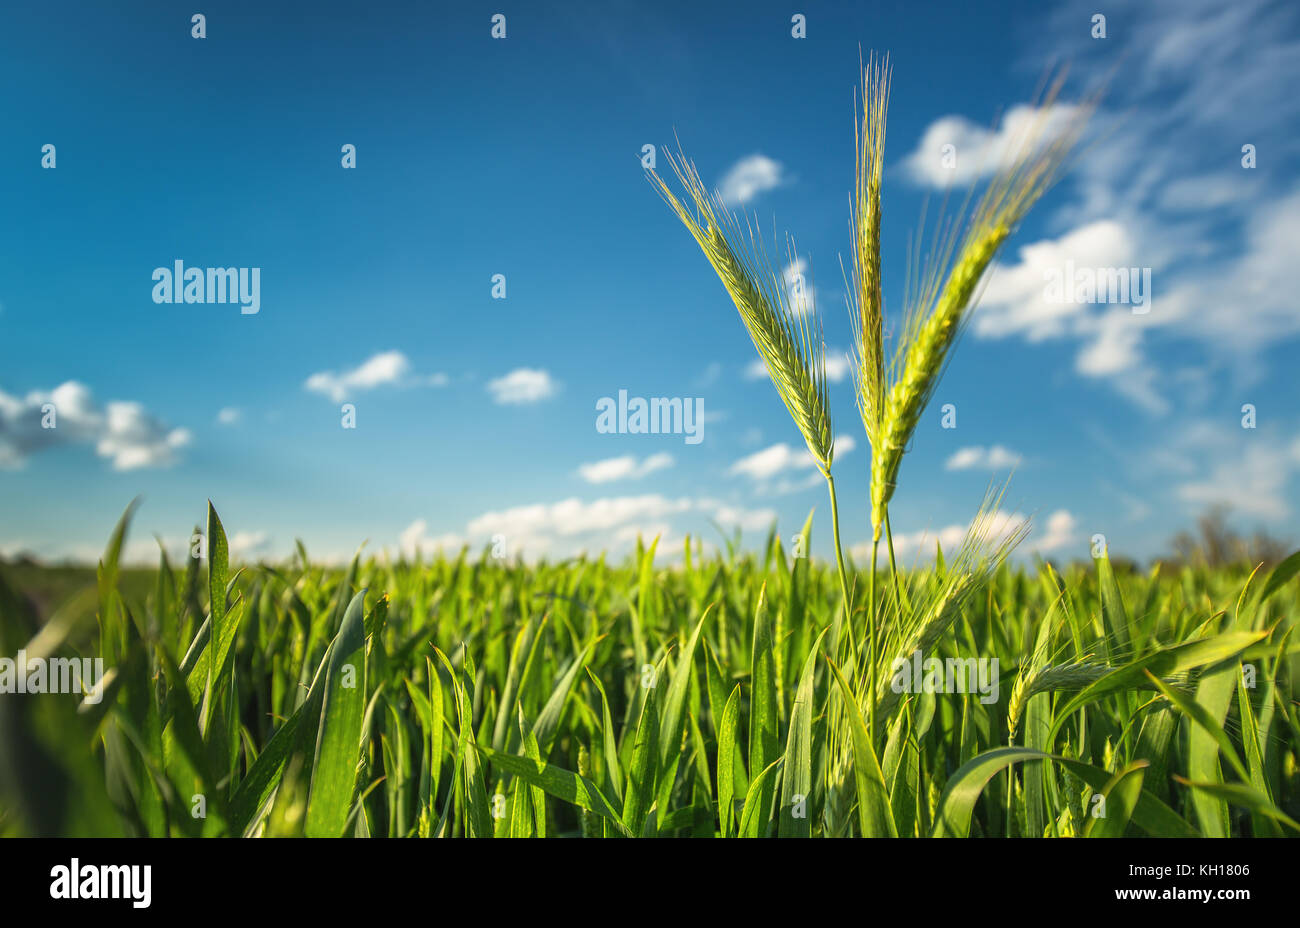 Green wheat field against blue sky - Stock Image